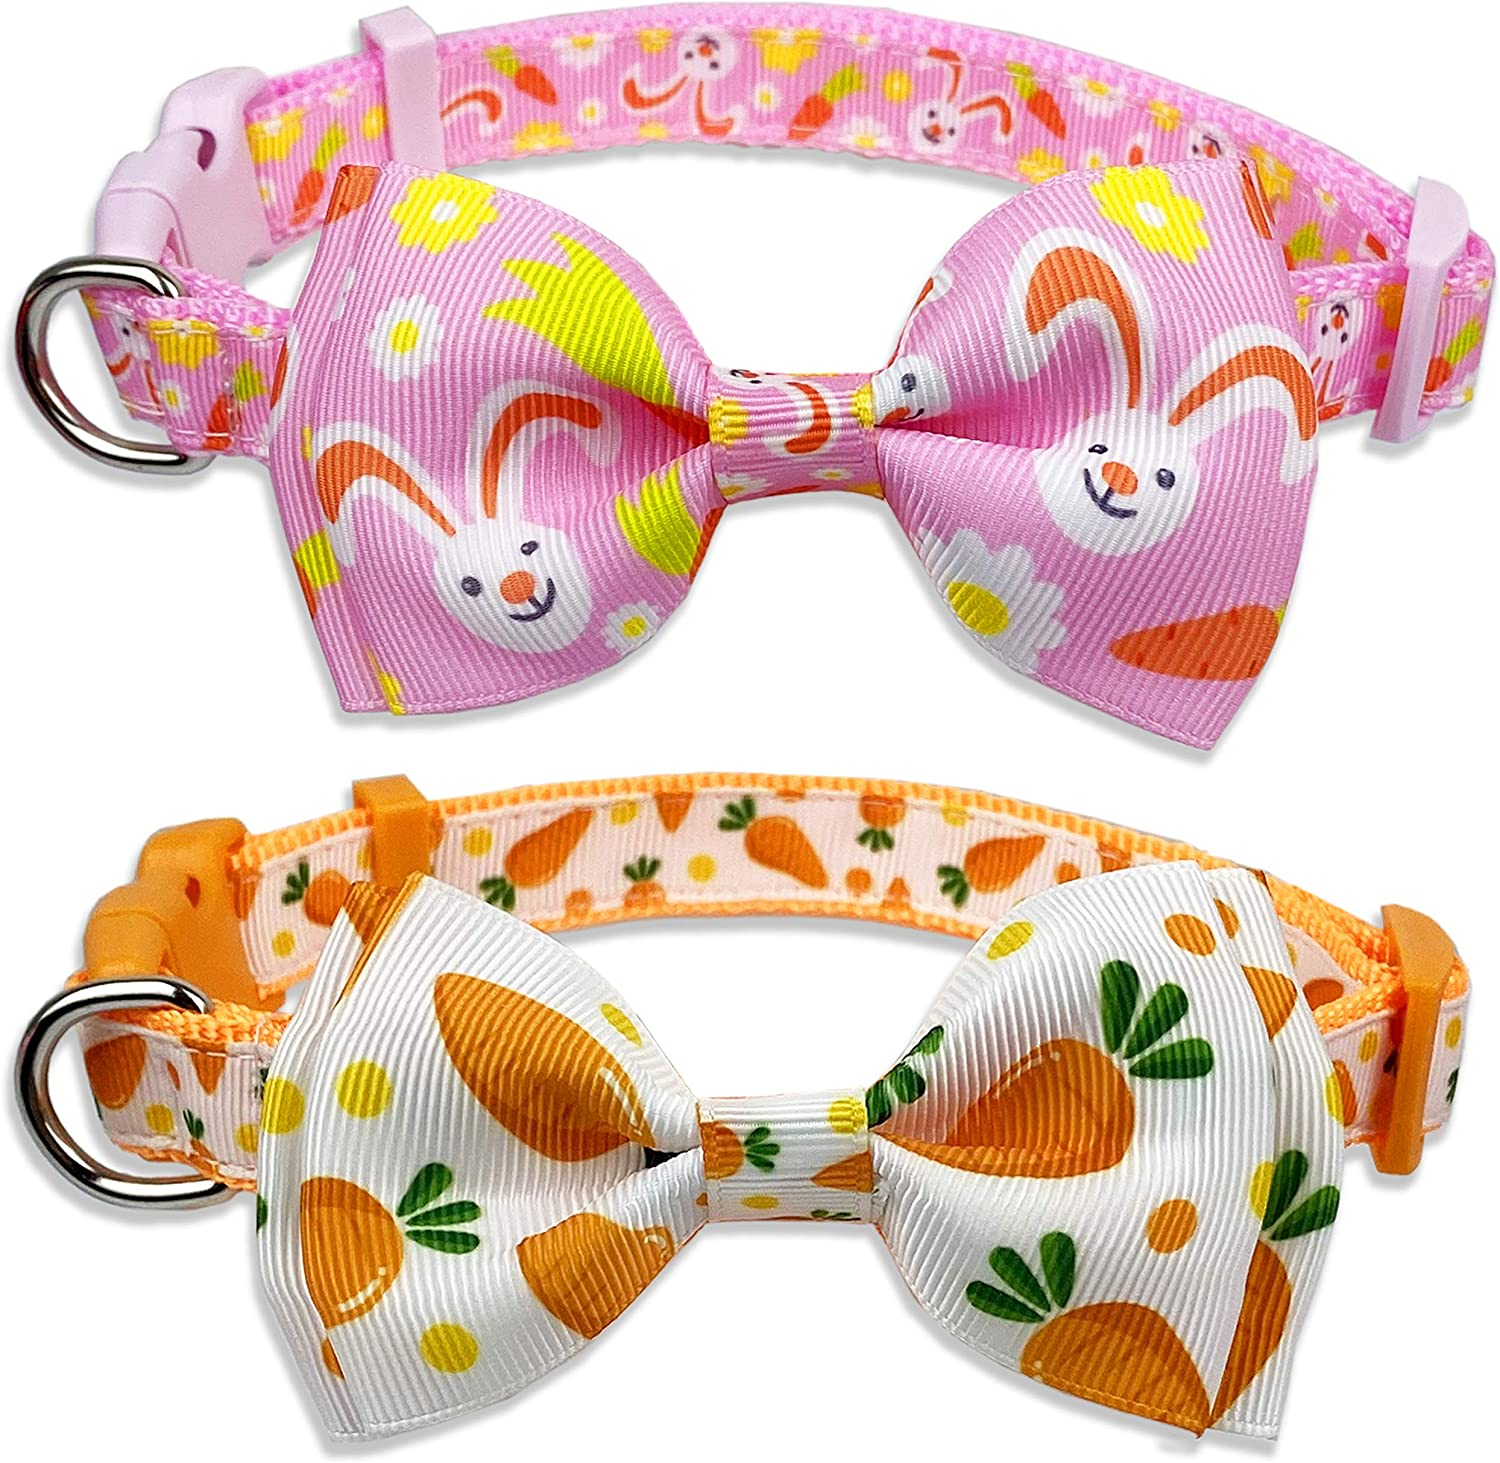 Easter Directly managed store Dog Collar with Bow for Holiday Carrot Bunny Fixed price for sale Tie